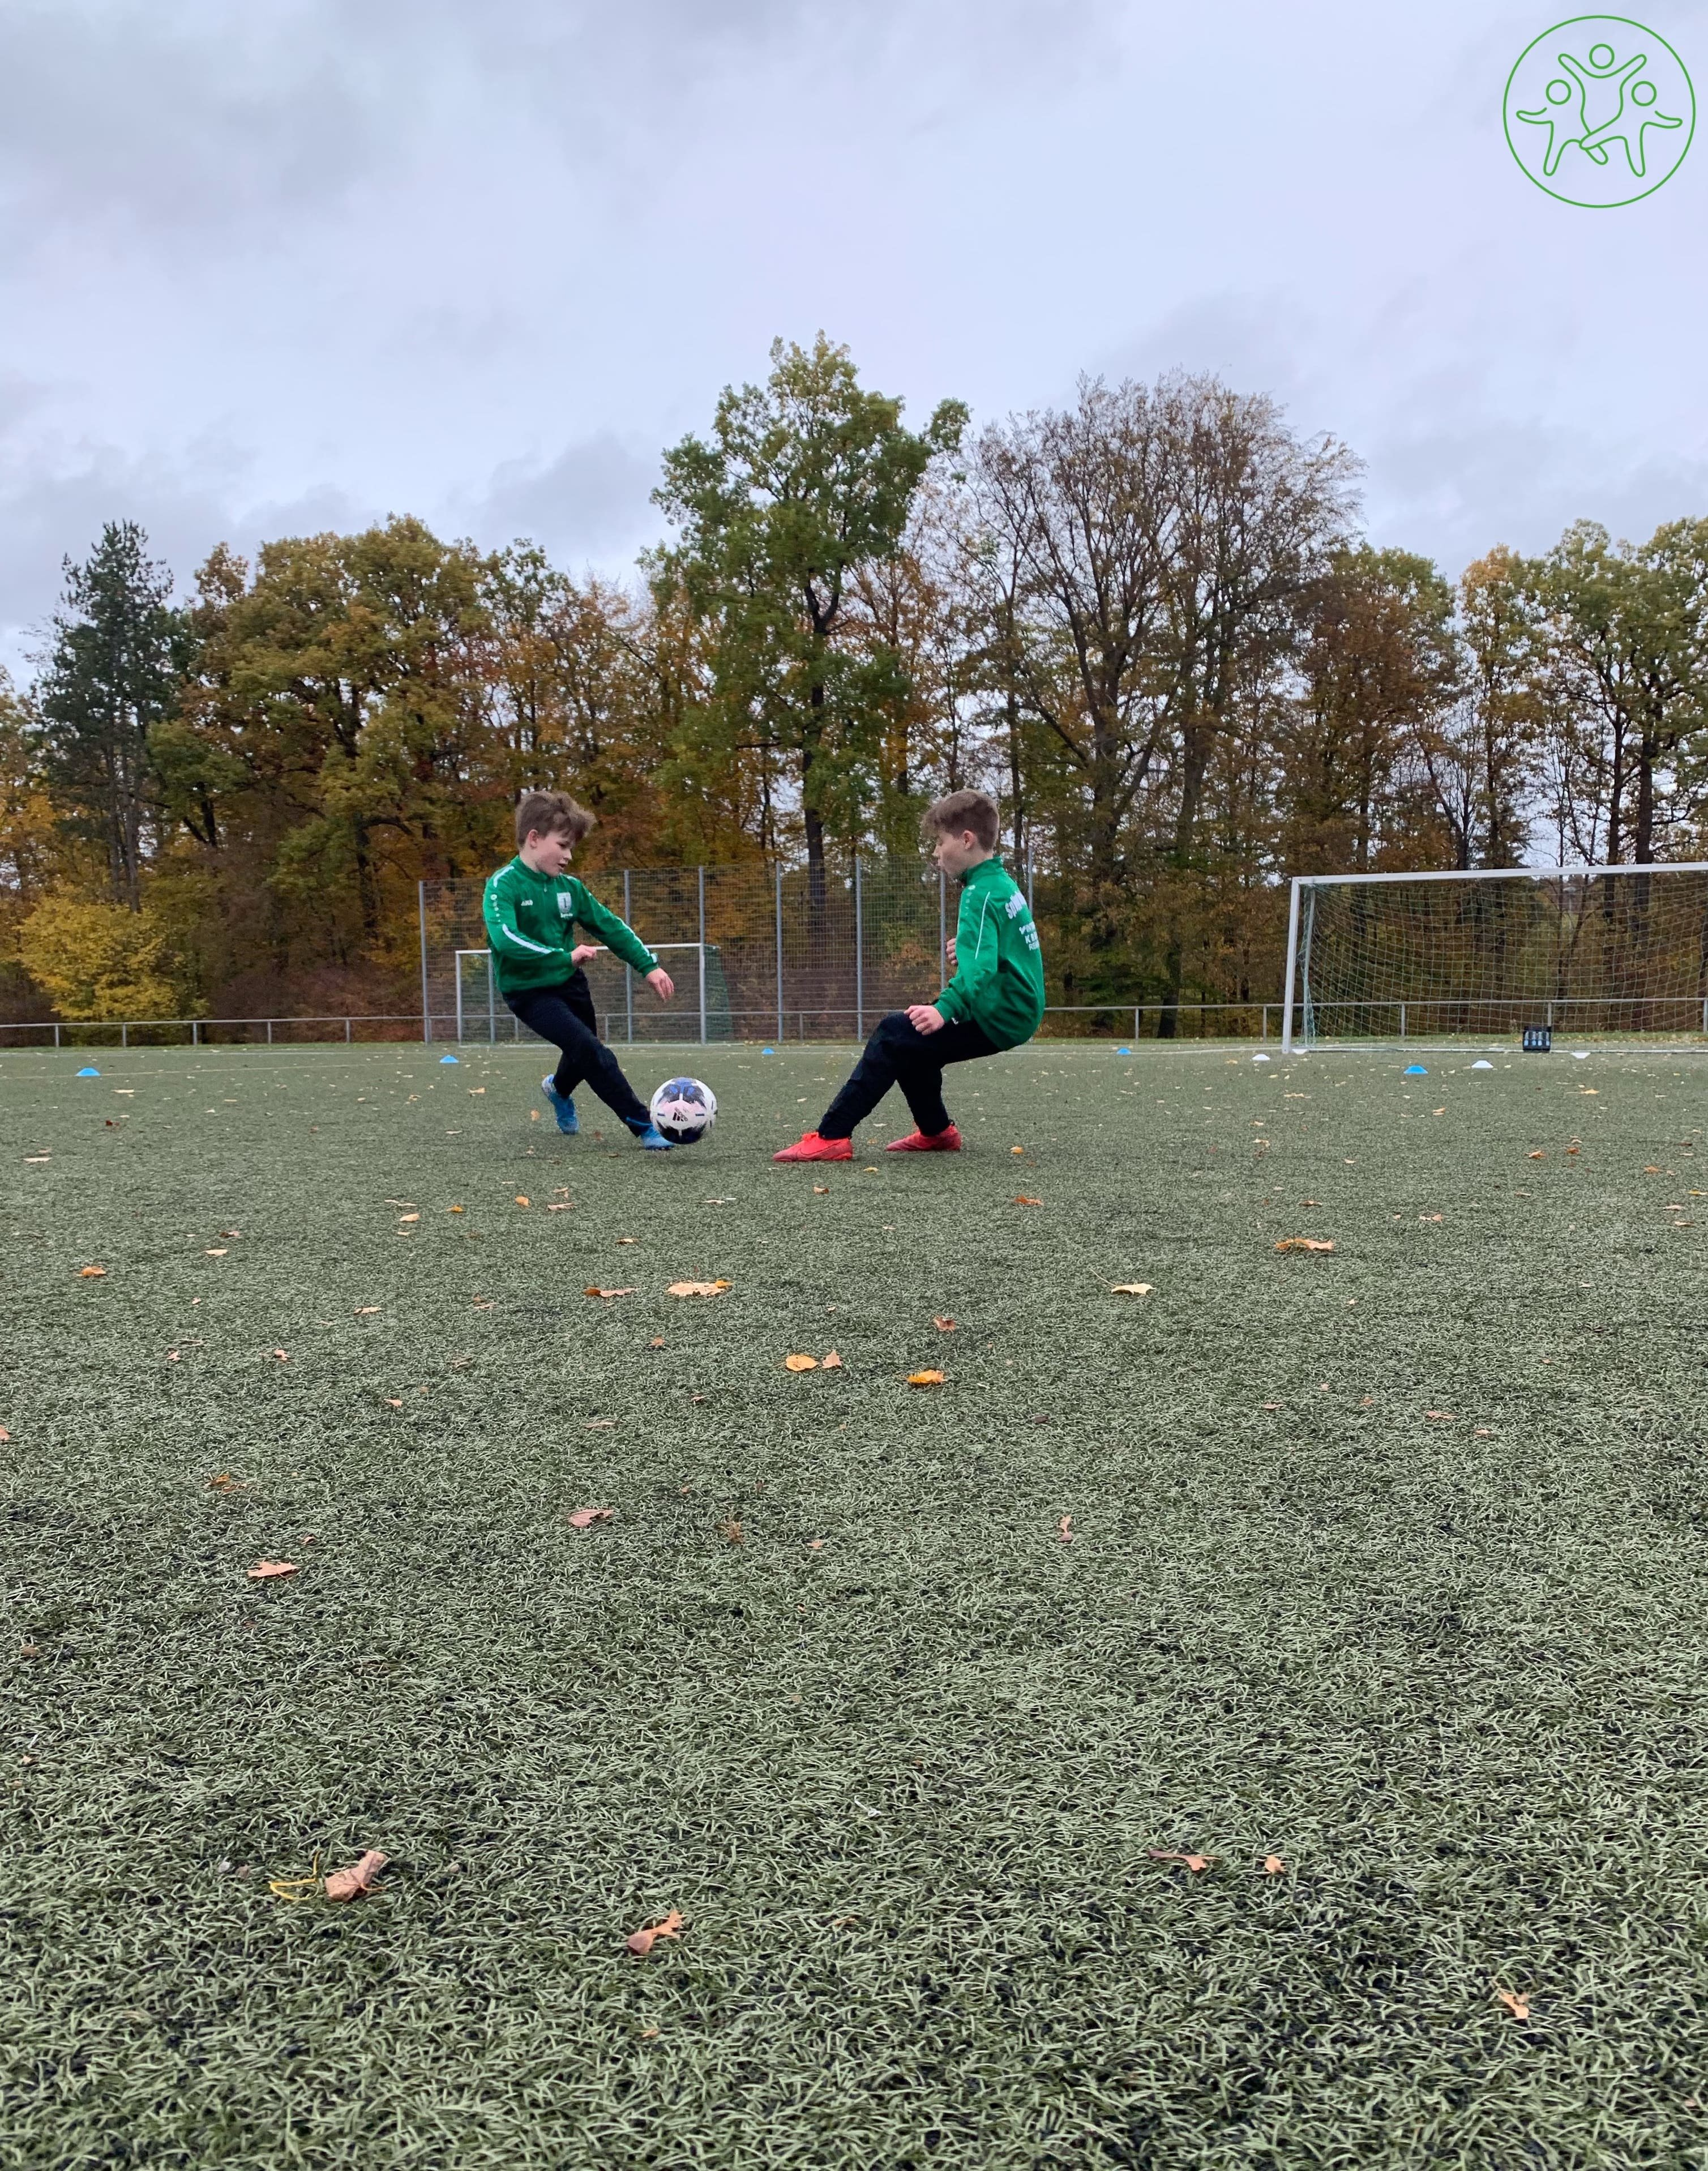 Home-of-Goals-Dribbling-Camp-Werte-Spass-Kinder